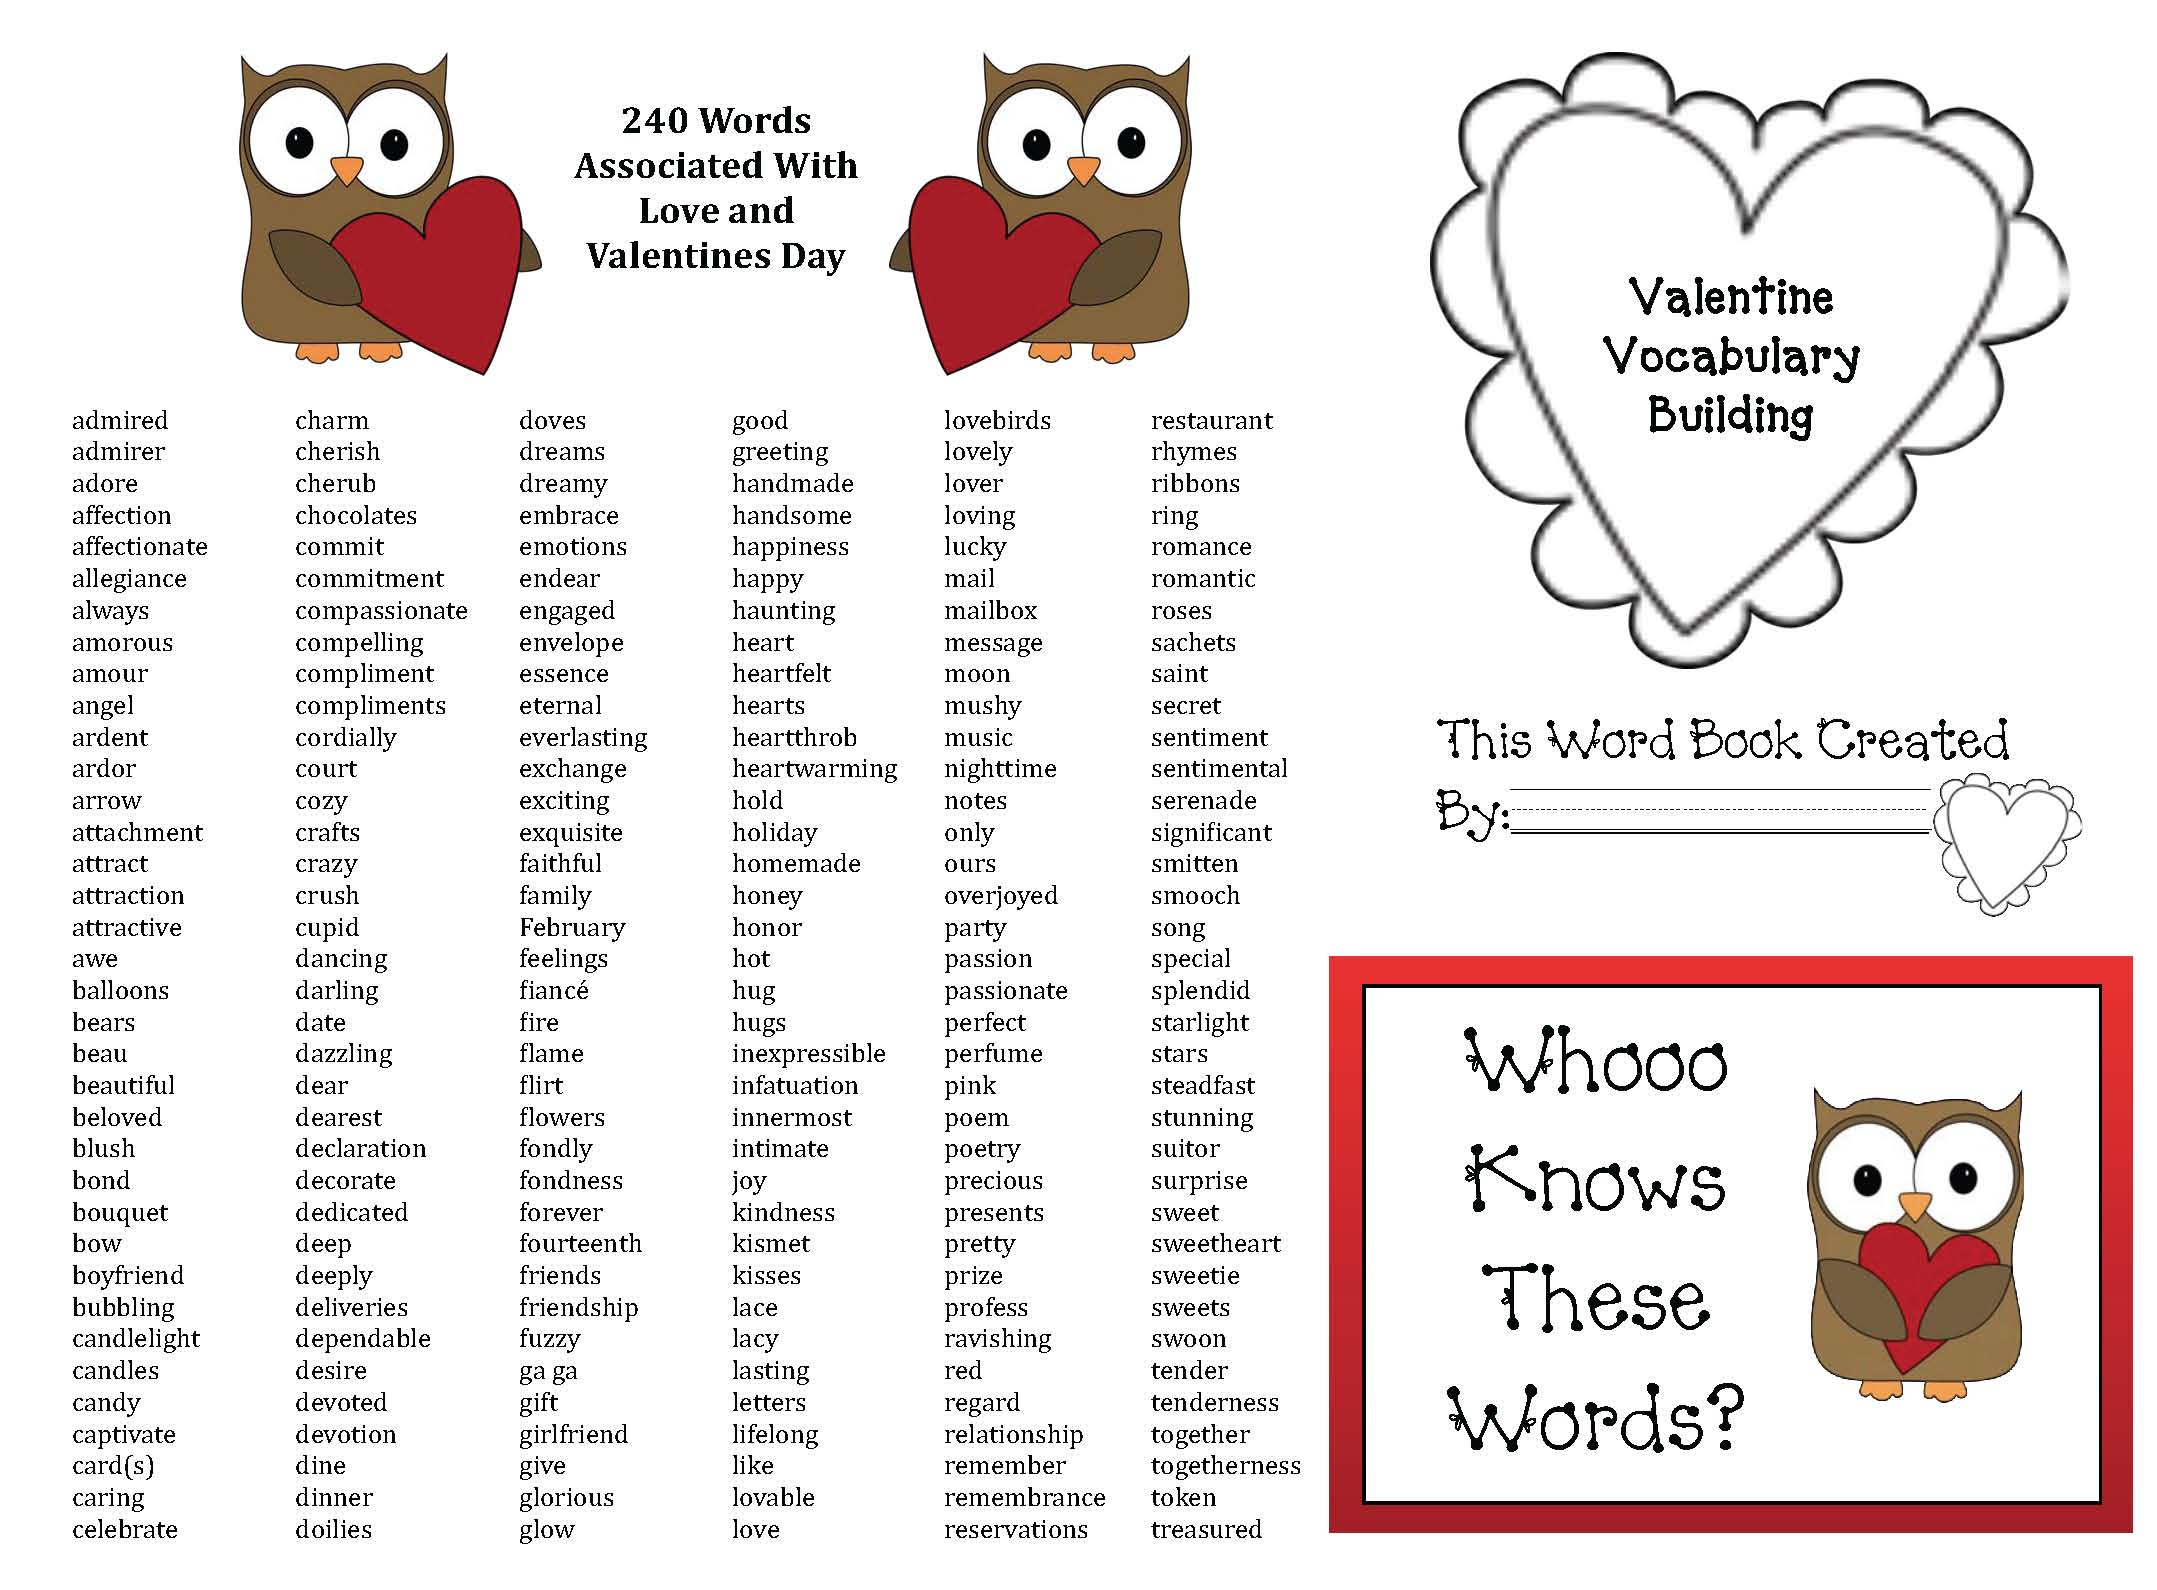 valentine vocabulary words, 240 words associated with love and valentines day, valentine venn diagrams, daily 5 activities, daily 5 activities for february, daily 5 word work activities, valentines day activities, valentines day puzzles, heart crafts, heart activities, valentine games, valentine centers, venn diagram activities, valentine crafts, valentines, valentine cards, telling time activities, telling time activities for valentines day, 1.MD.3, common core state standards for 1st grade, writing prompts for february, writing prompts for valentines day, vocabulary building activities, comparing holidays